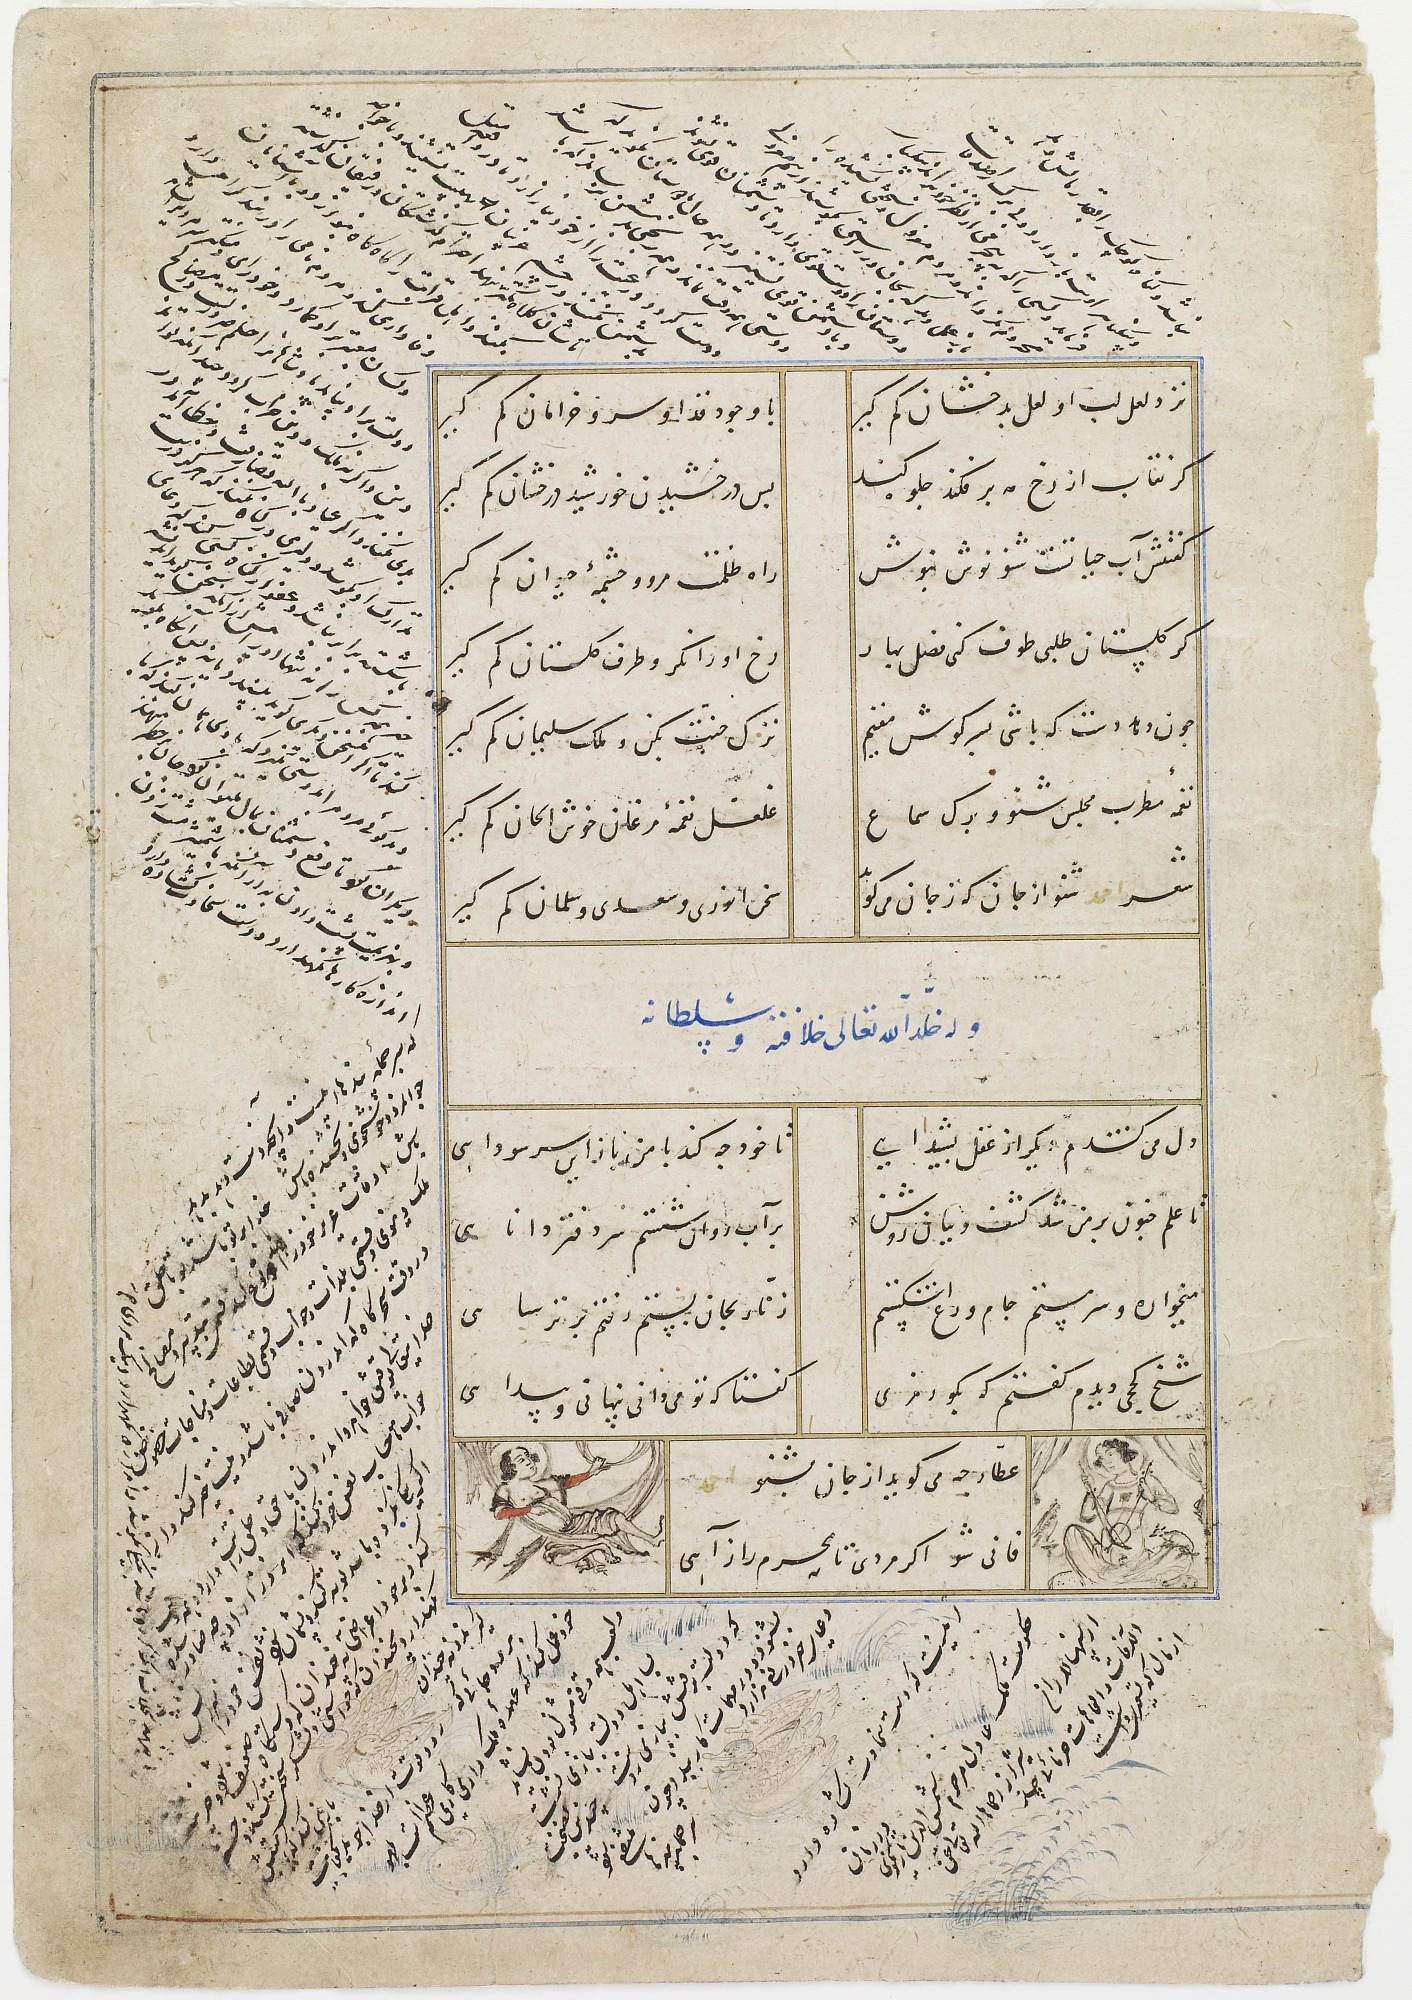 Folio from a Divan (Collected poems) by Sultan Ahmad Jalayir (d.1410); recto:text; verso: text